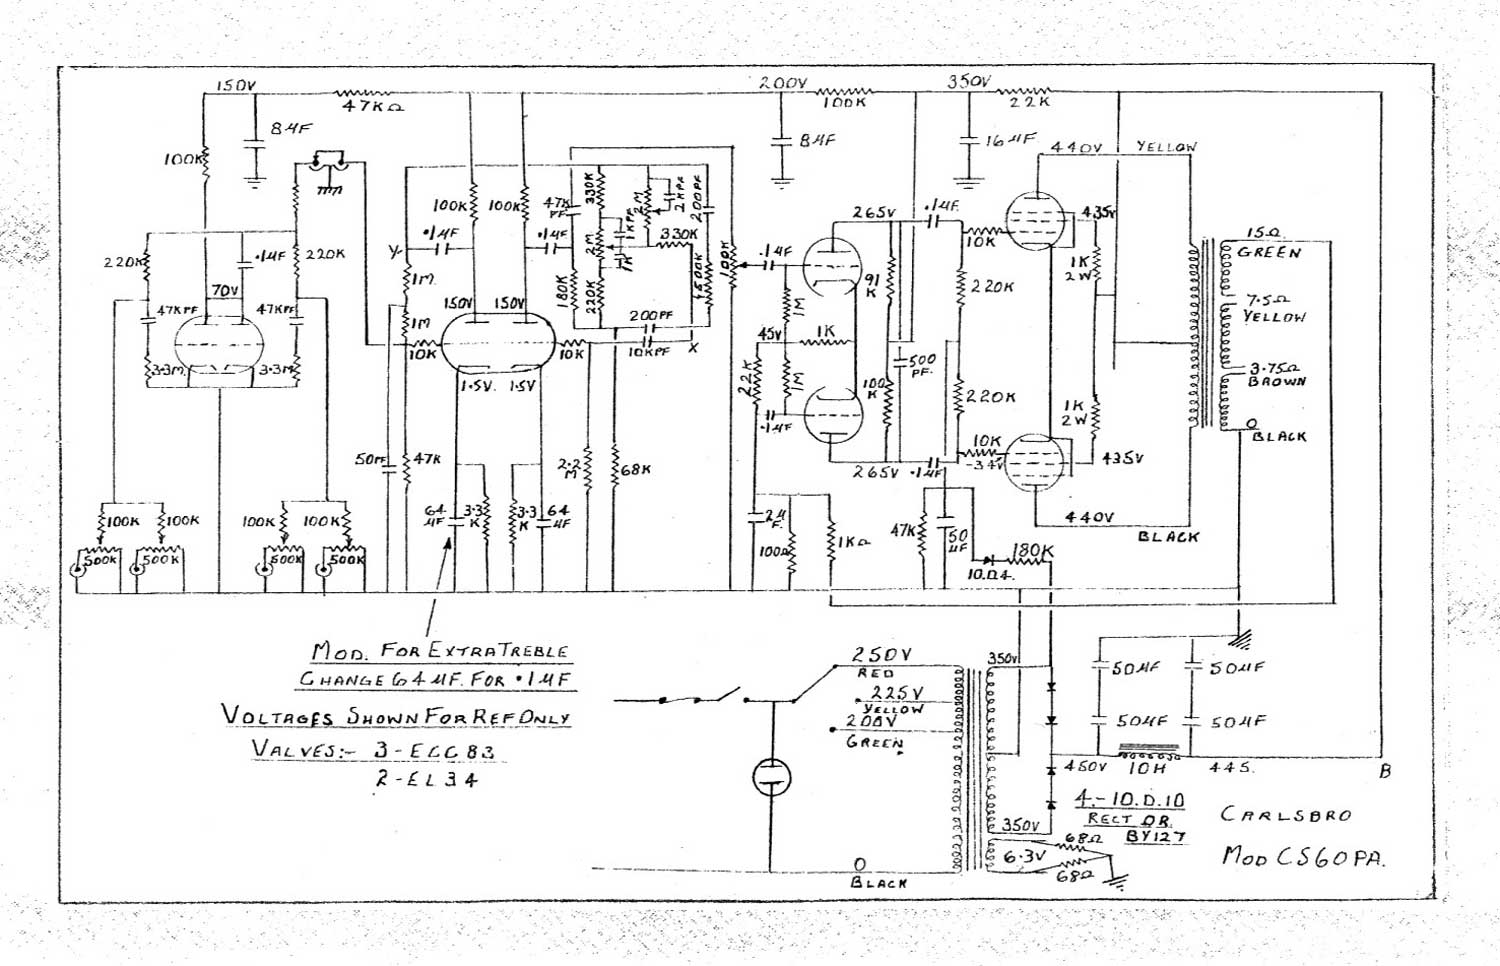 Carlsbro Modified CS60 P.A. Amp Schematic